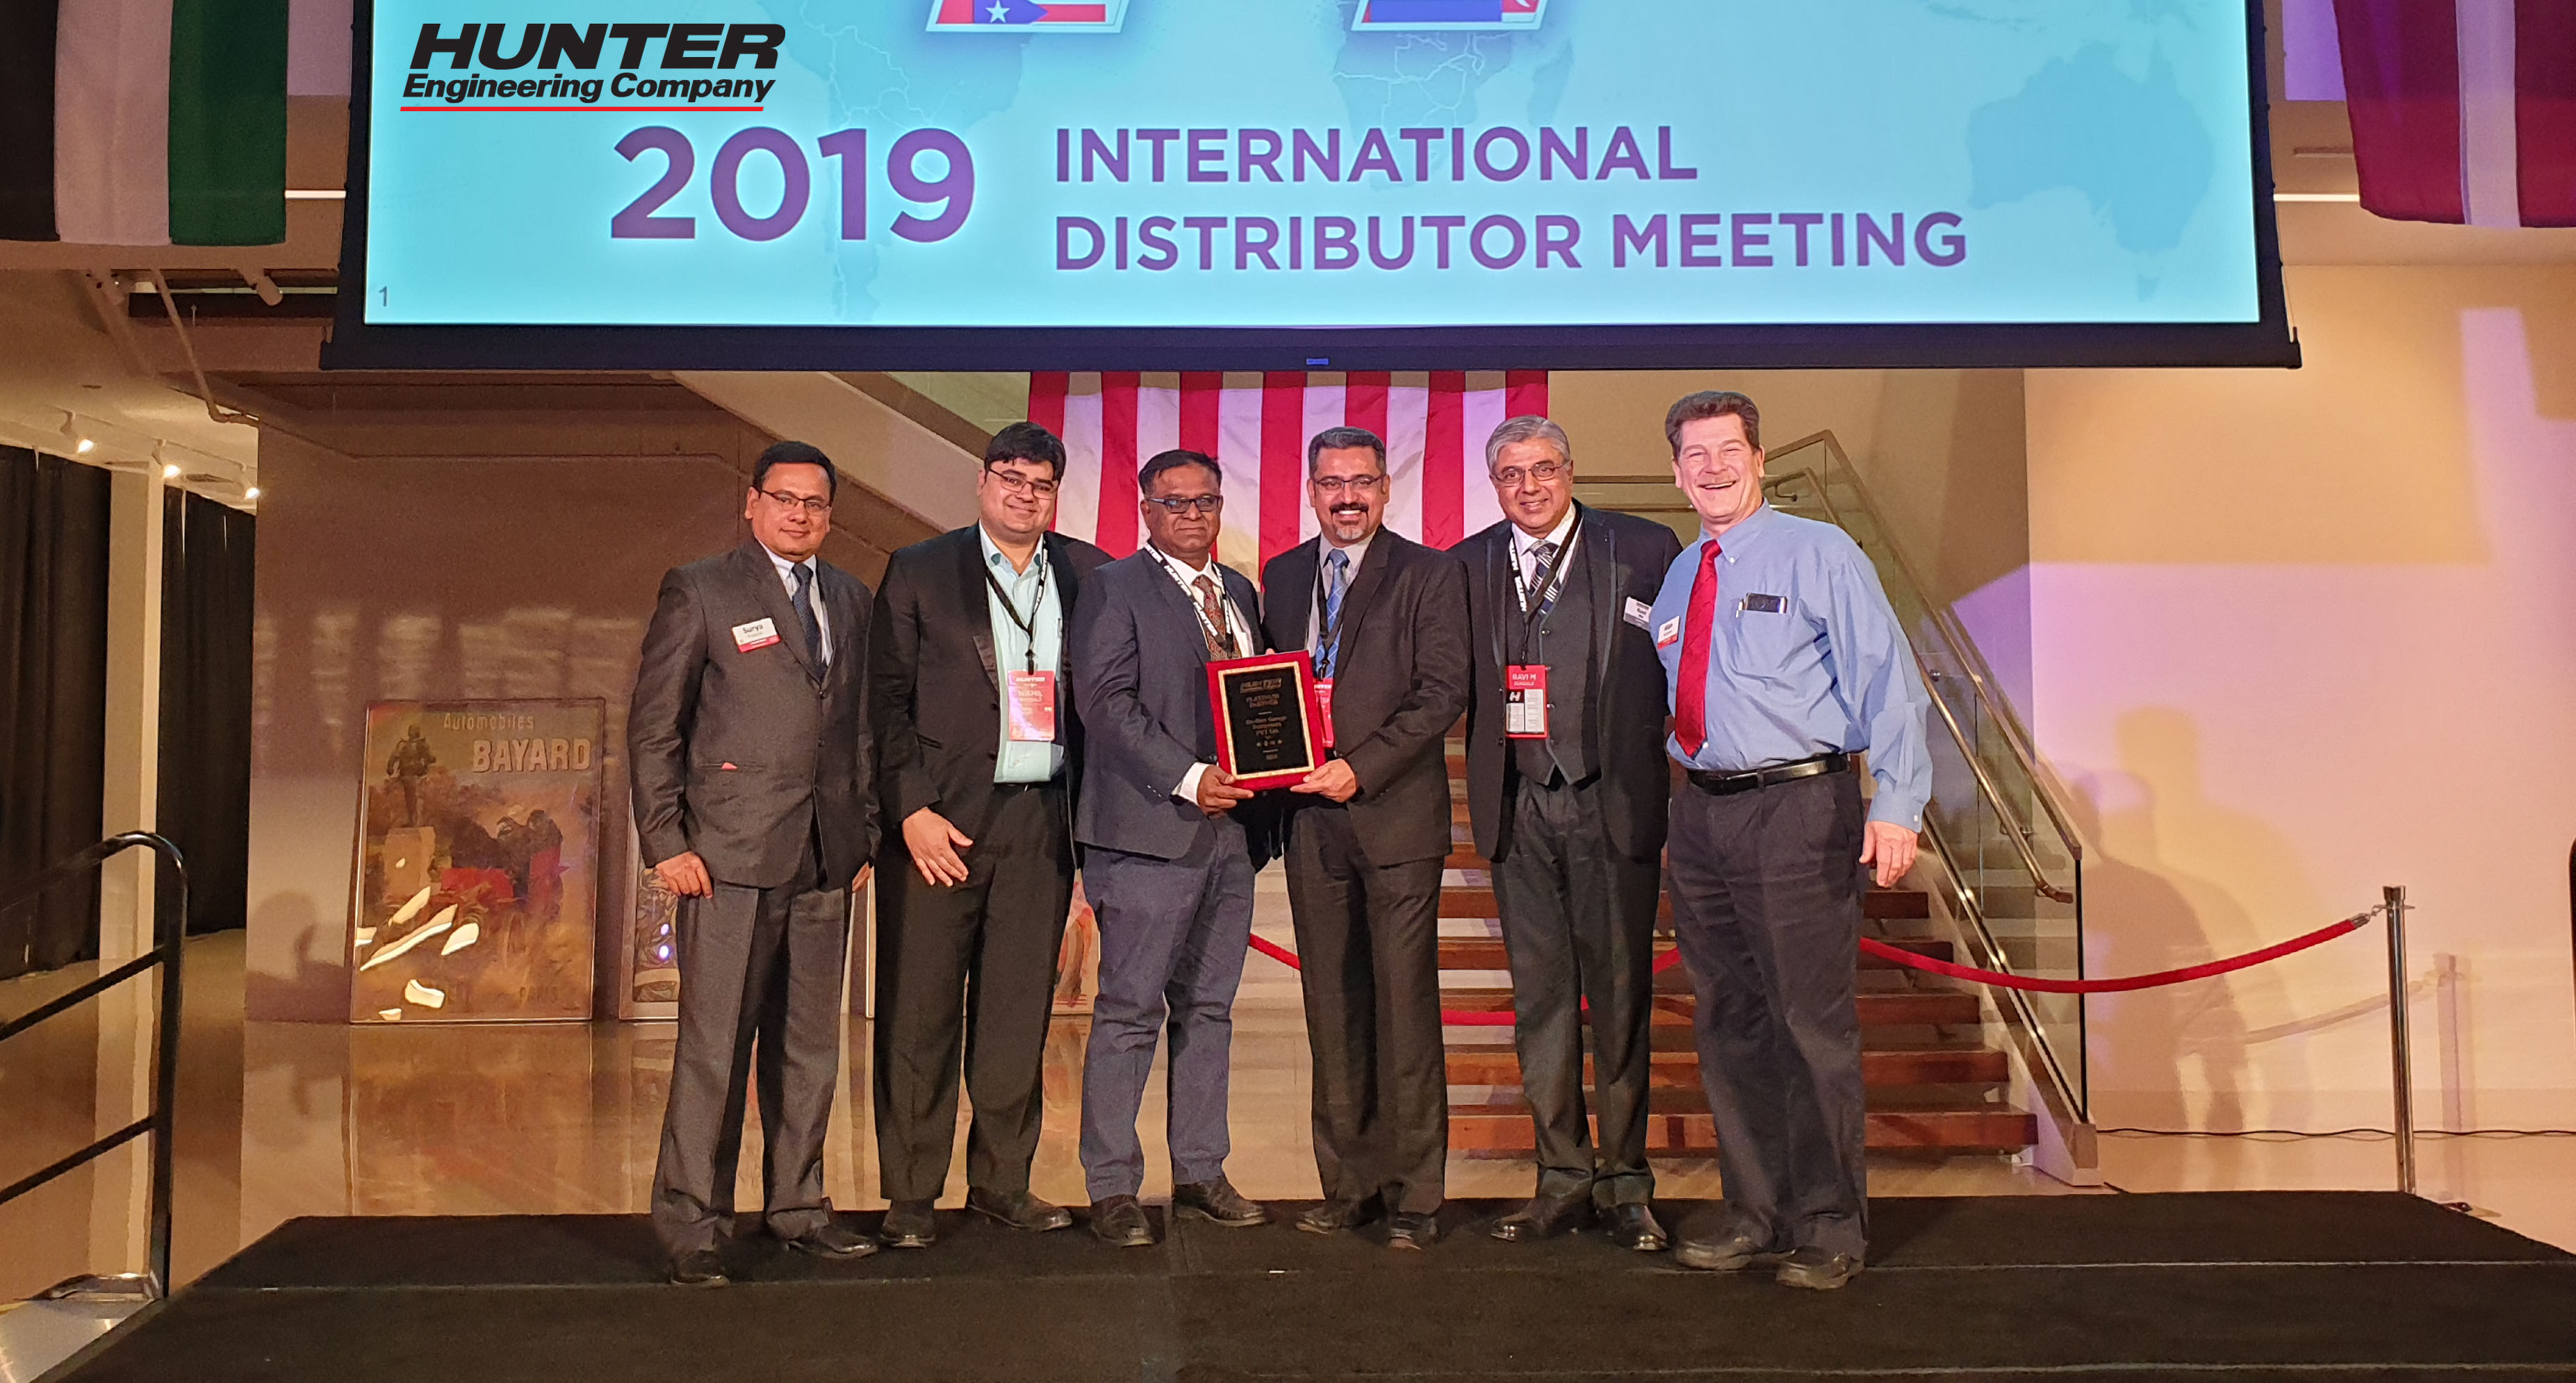 Madhus Garage Equipment - Hunter award 2019